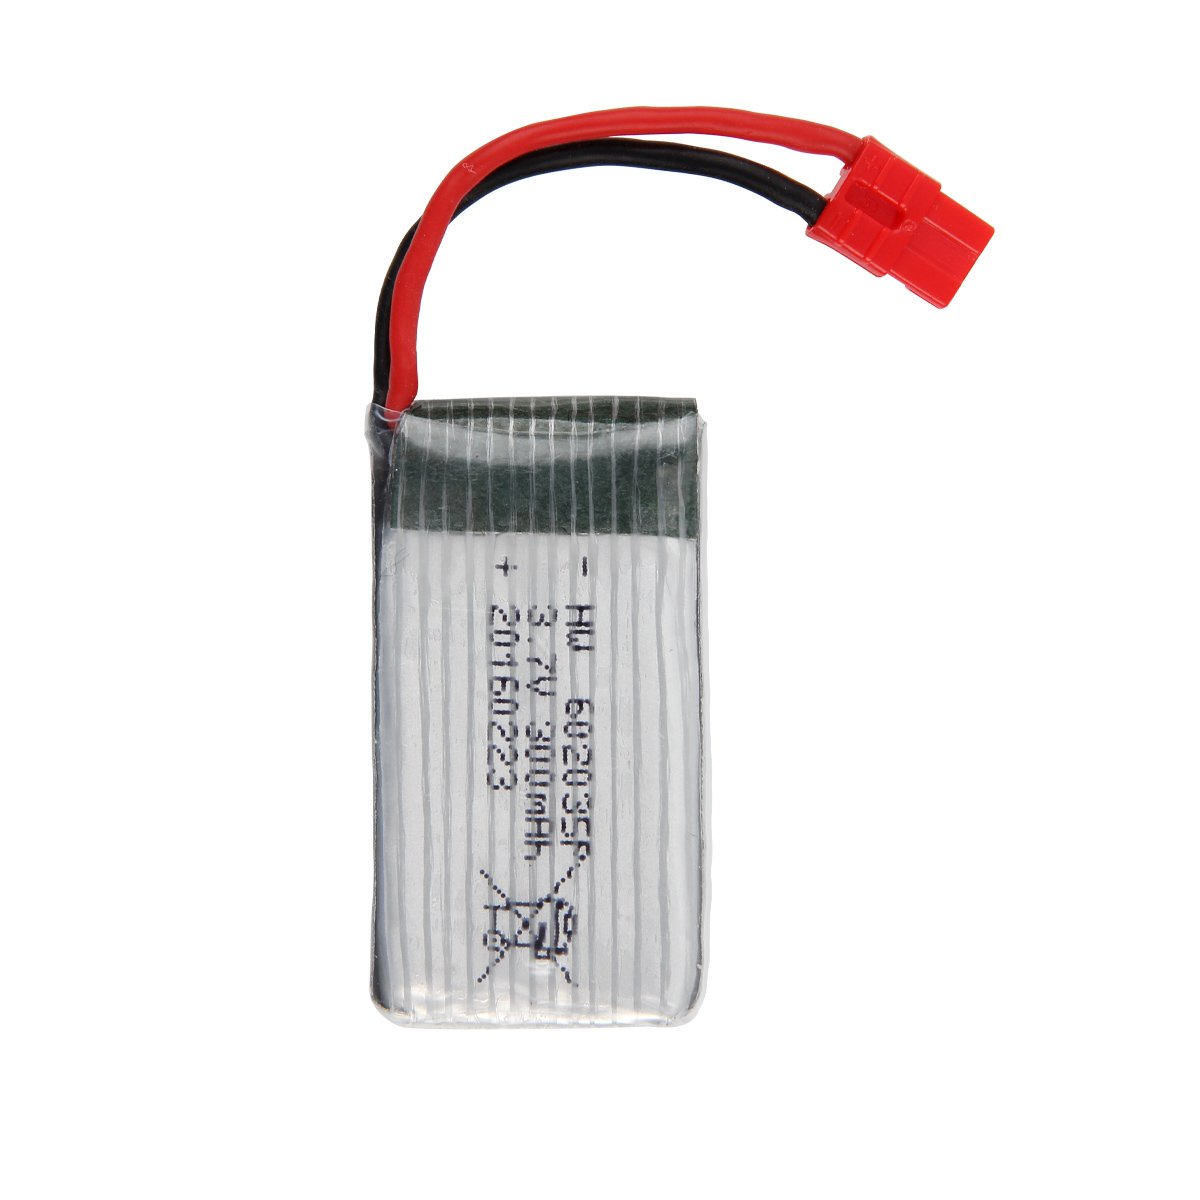 Syma X5A-1 1piece 3.7V 300mAh Lipo Battery with USB Charger Spare Part